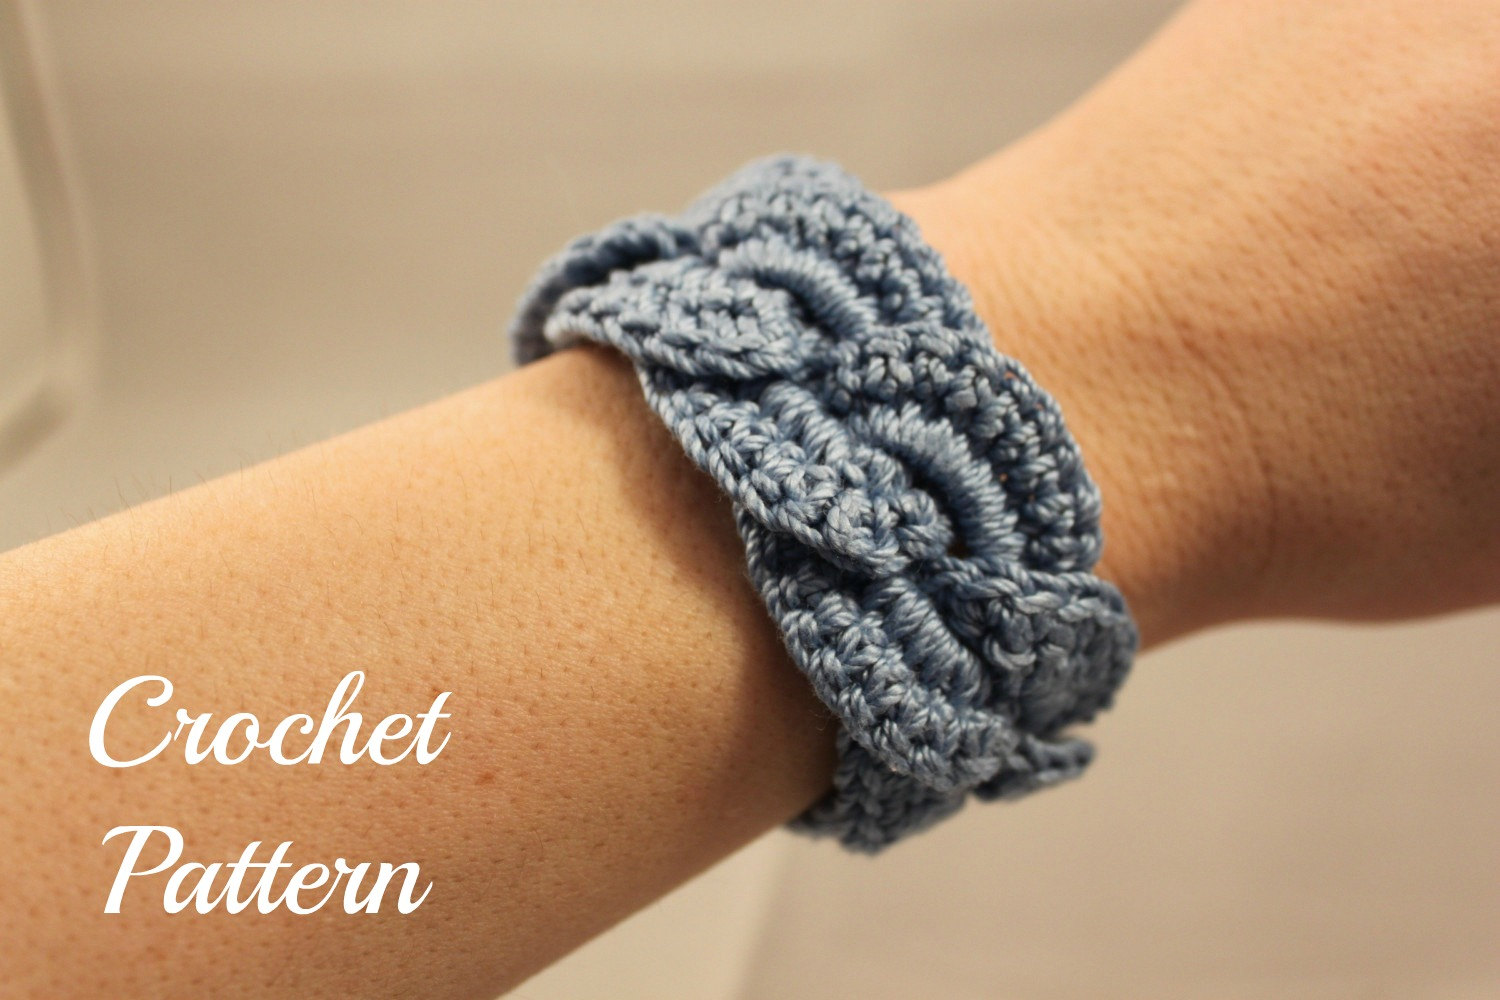 Crocheting Bracelets : Bracelet Zipper Galleries: Crochet Bracelet Pattern